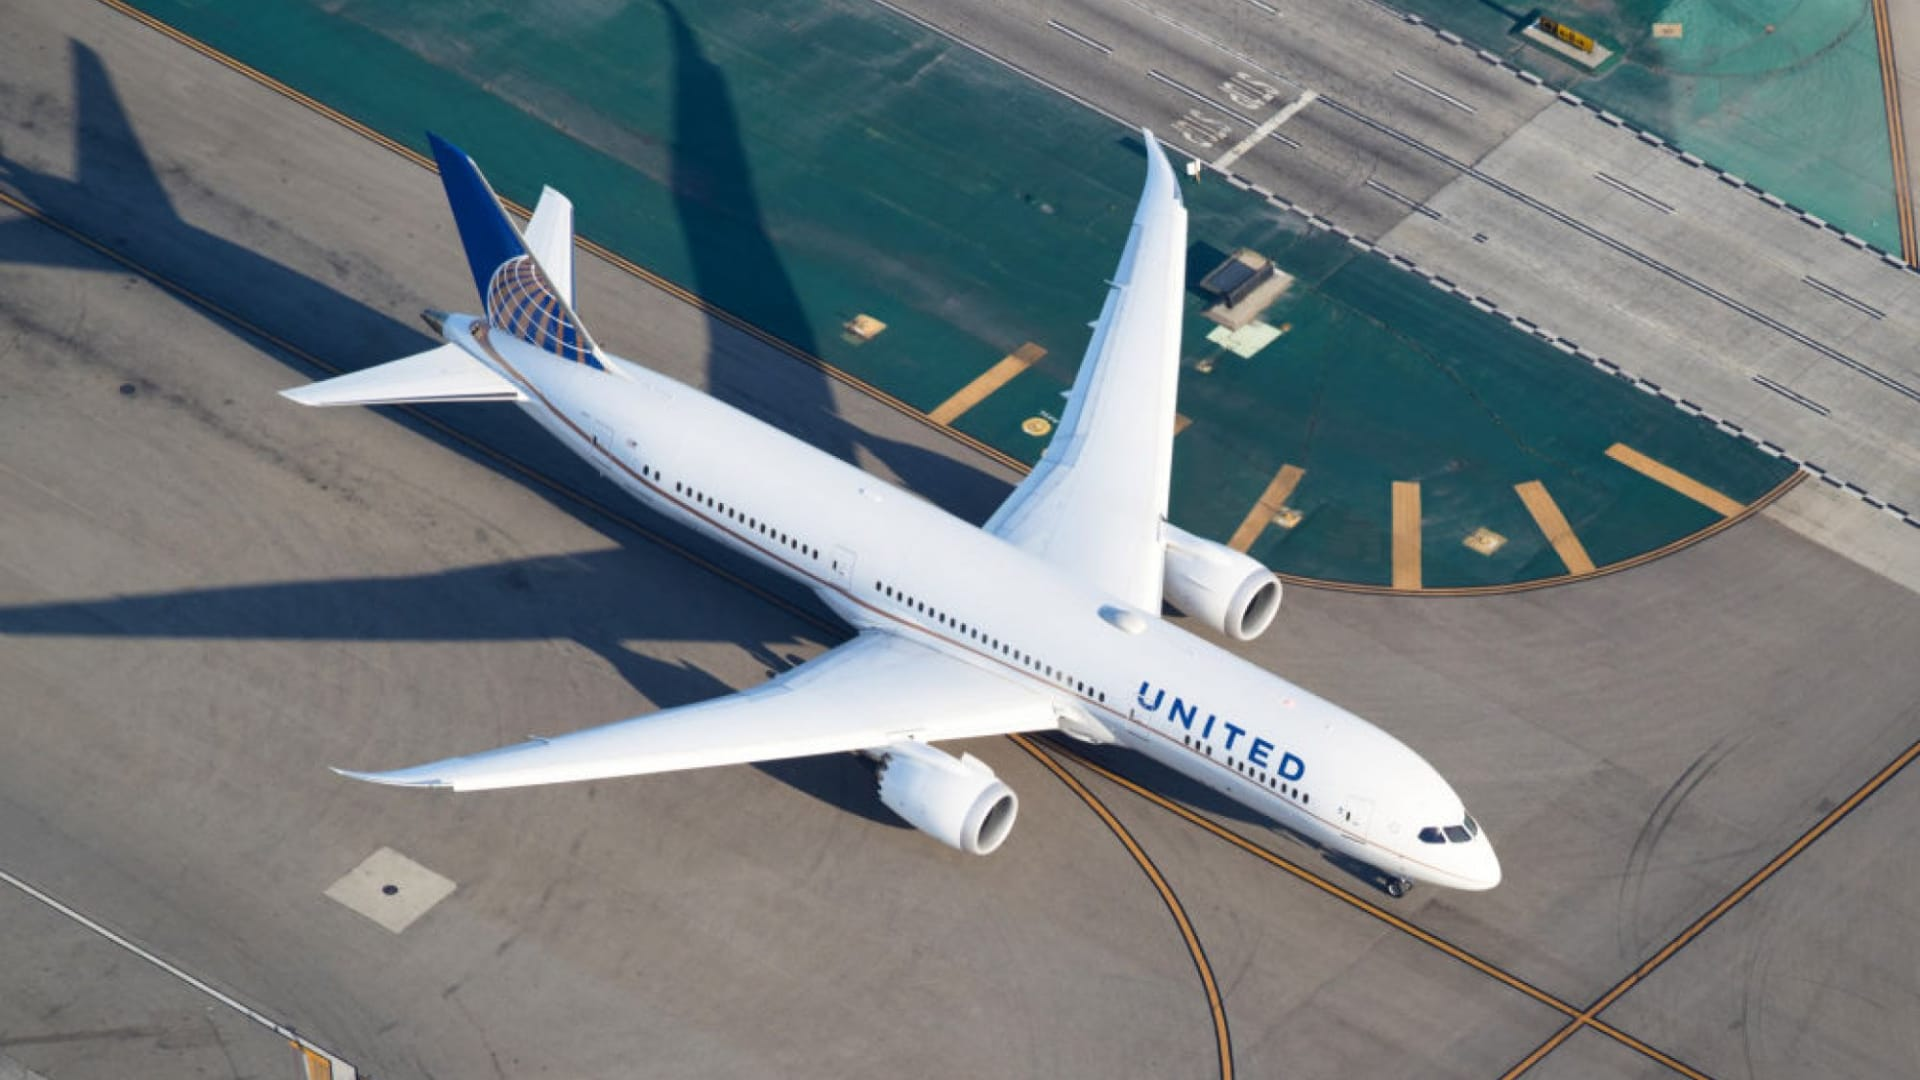 With 11 Short Words, United Airlines Just Shared the Perfect Leadership Message for 2021